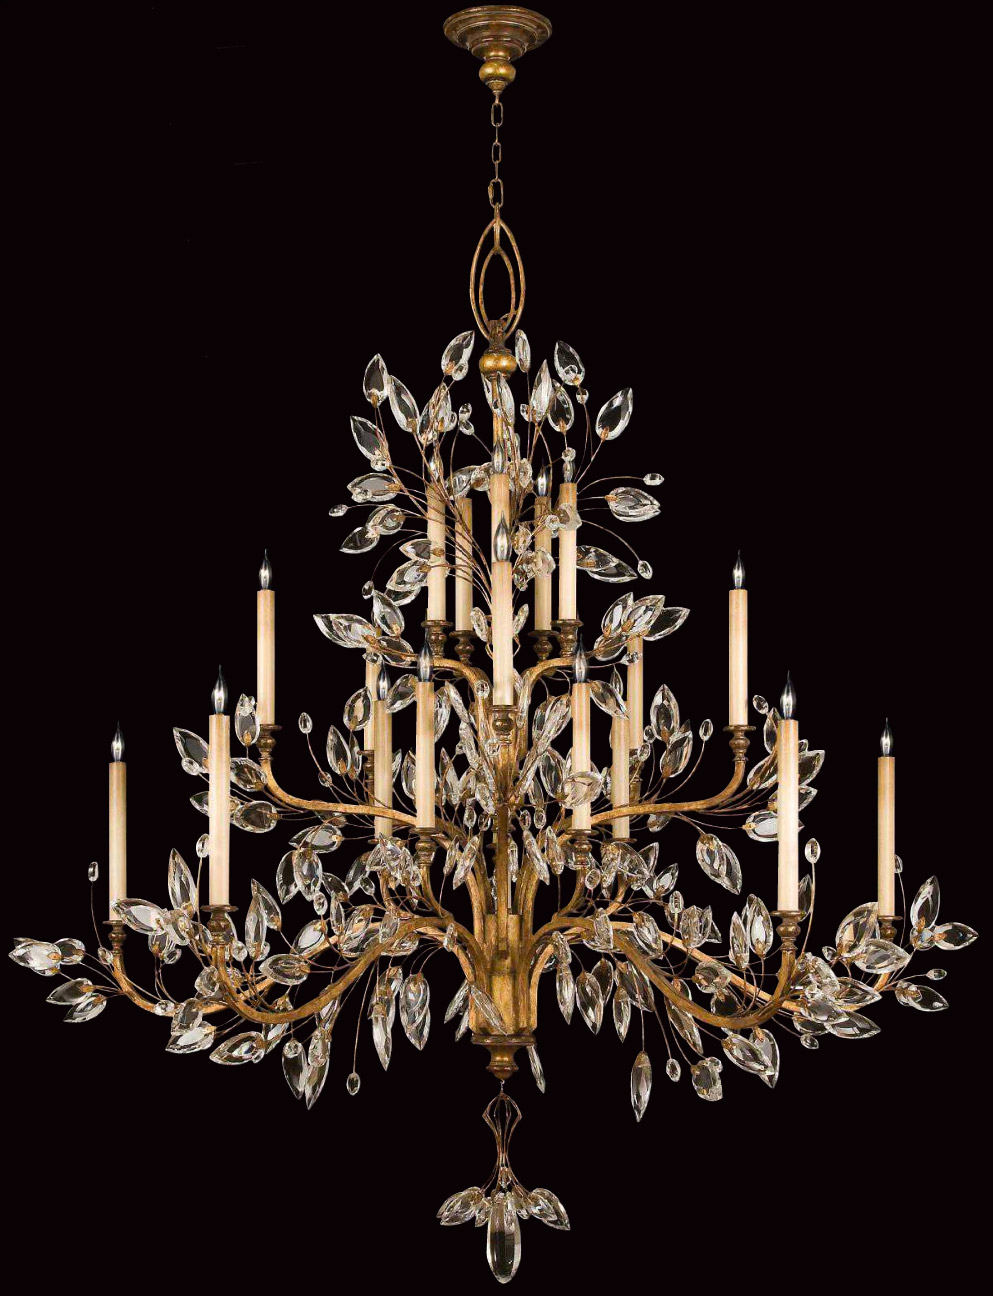 Fine Art Lamps 774540 Crystal Crystal Laurel Gold Grand